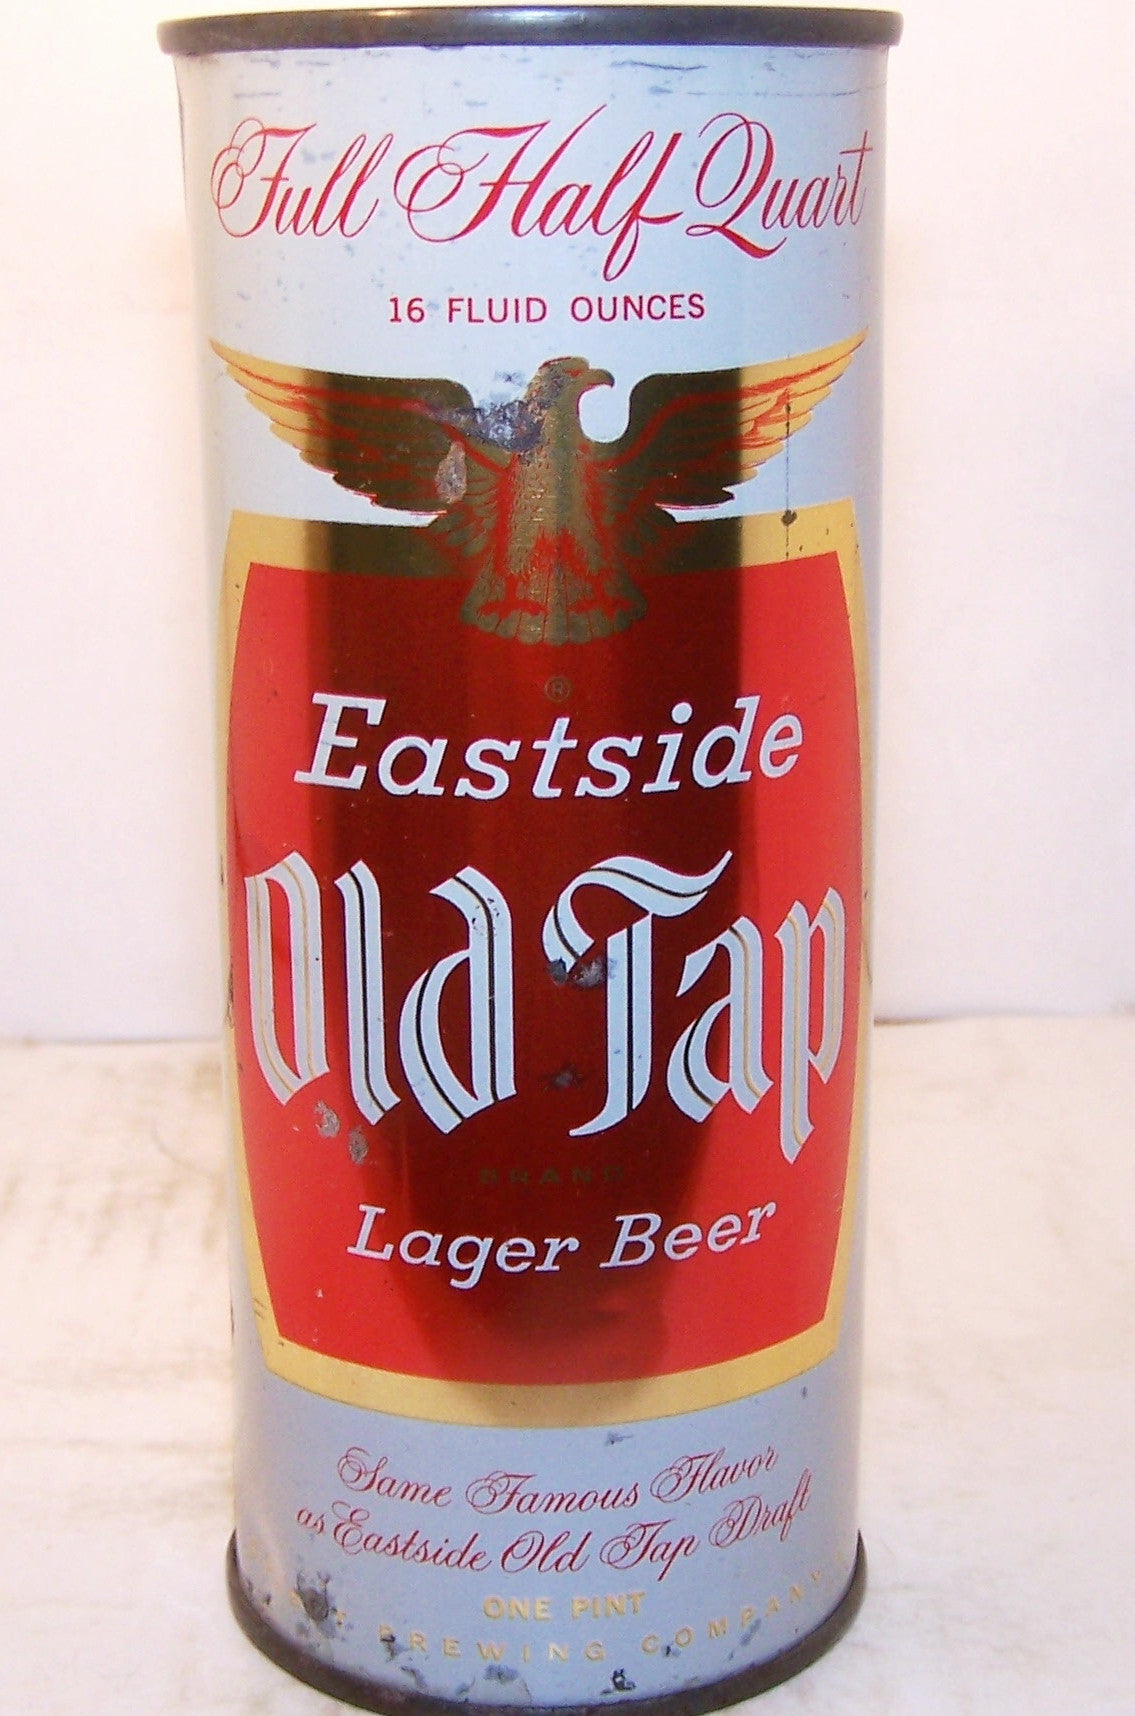 Eastside Old Tap Lager Beer, USBC 228-26, Grade 1- Sold 4/11/15